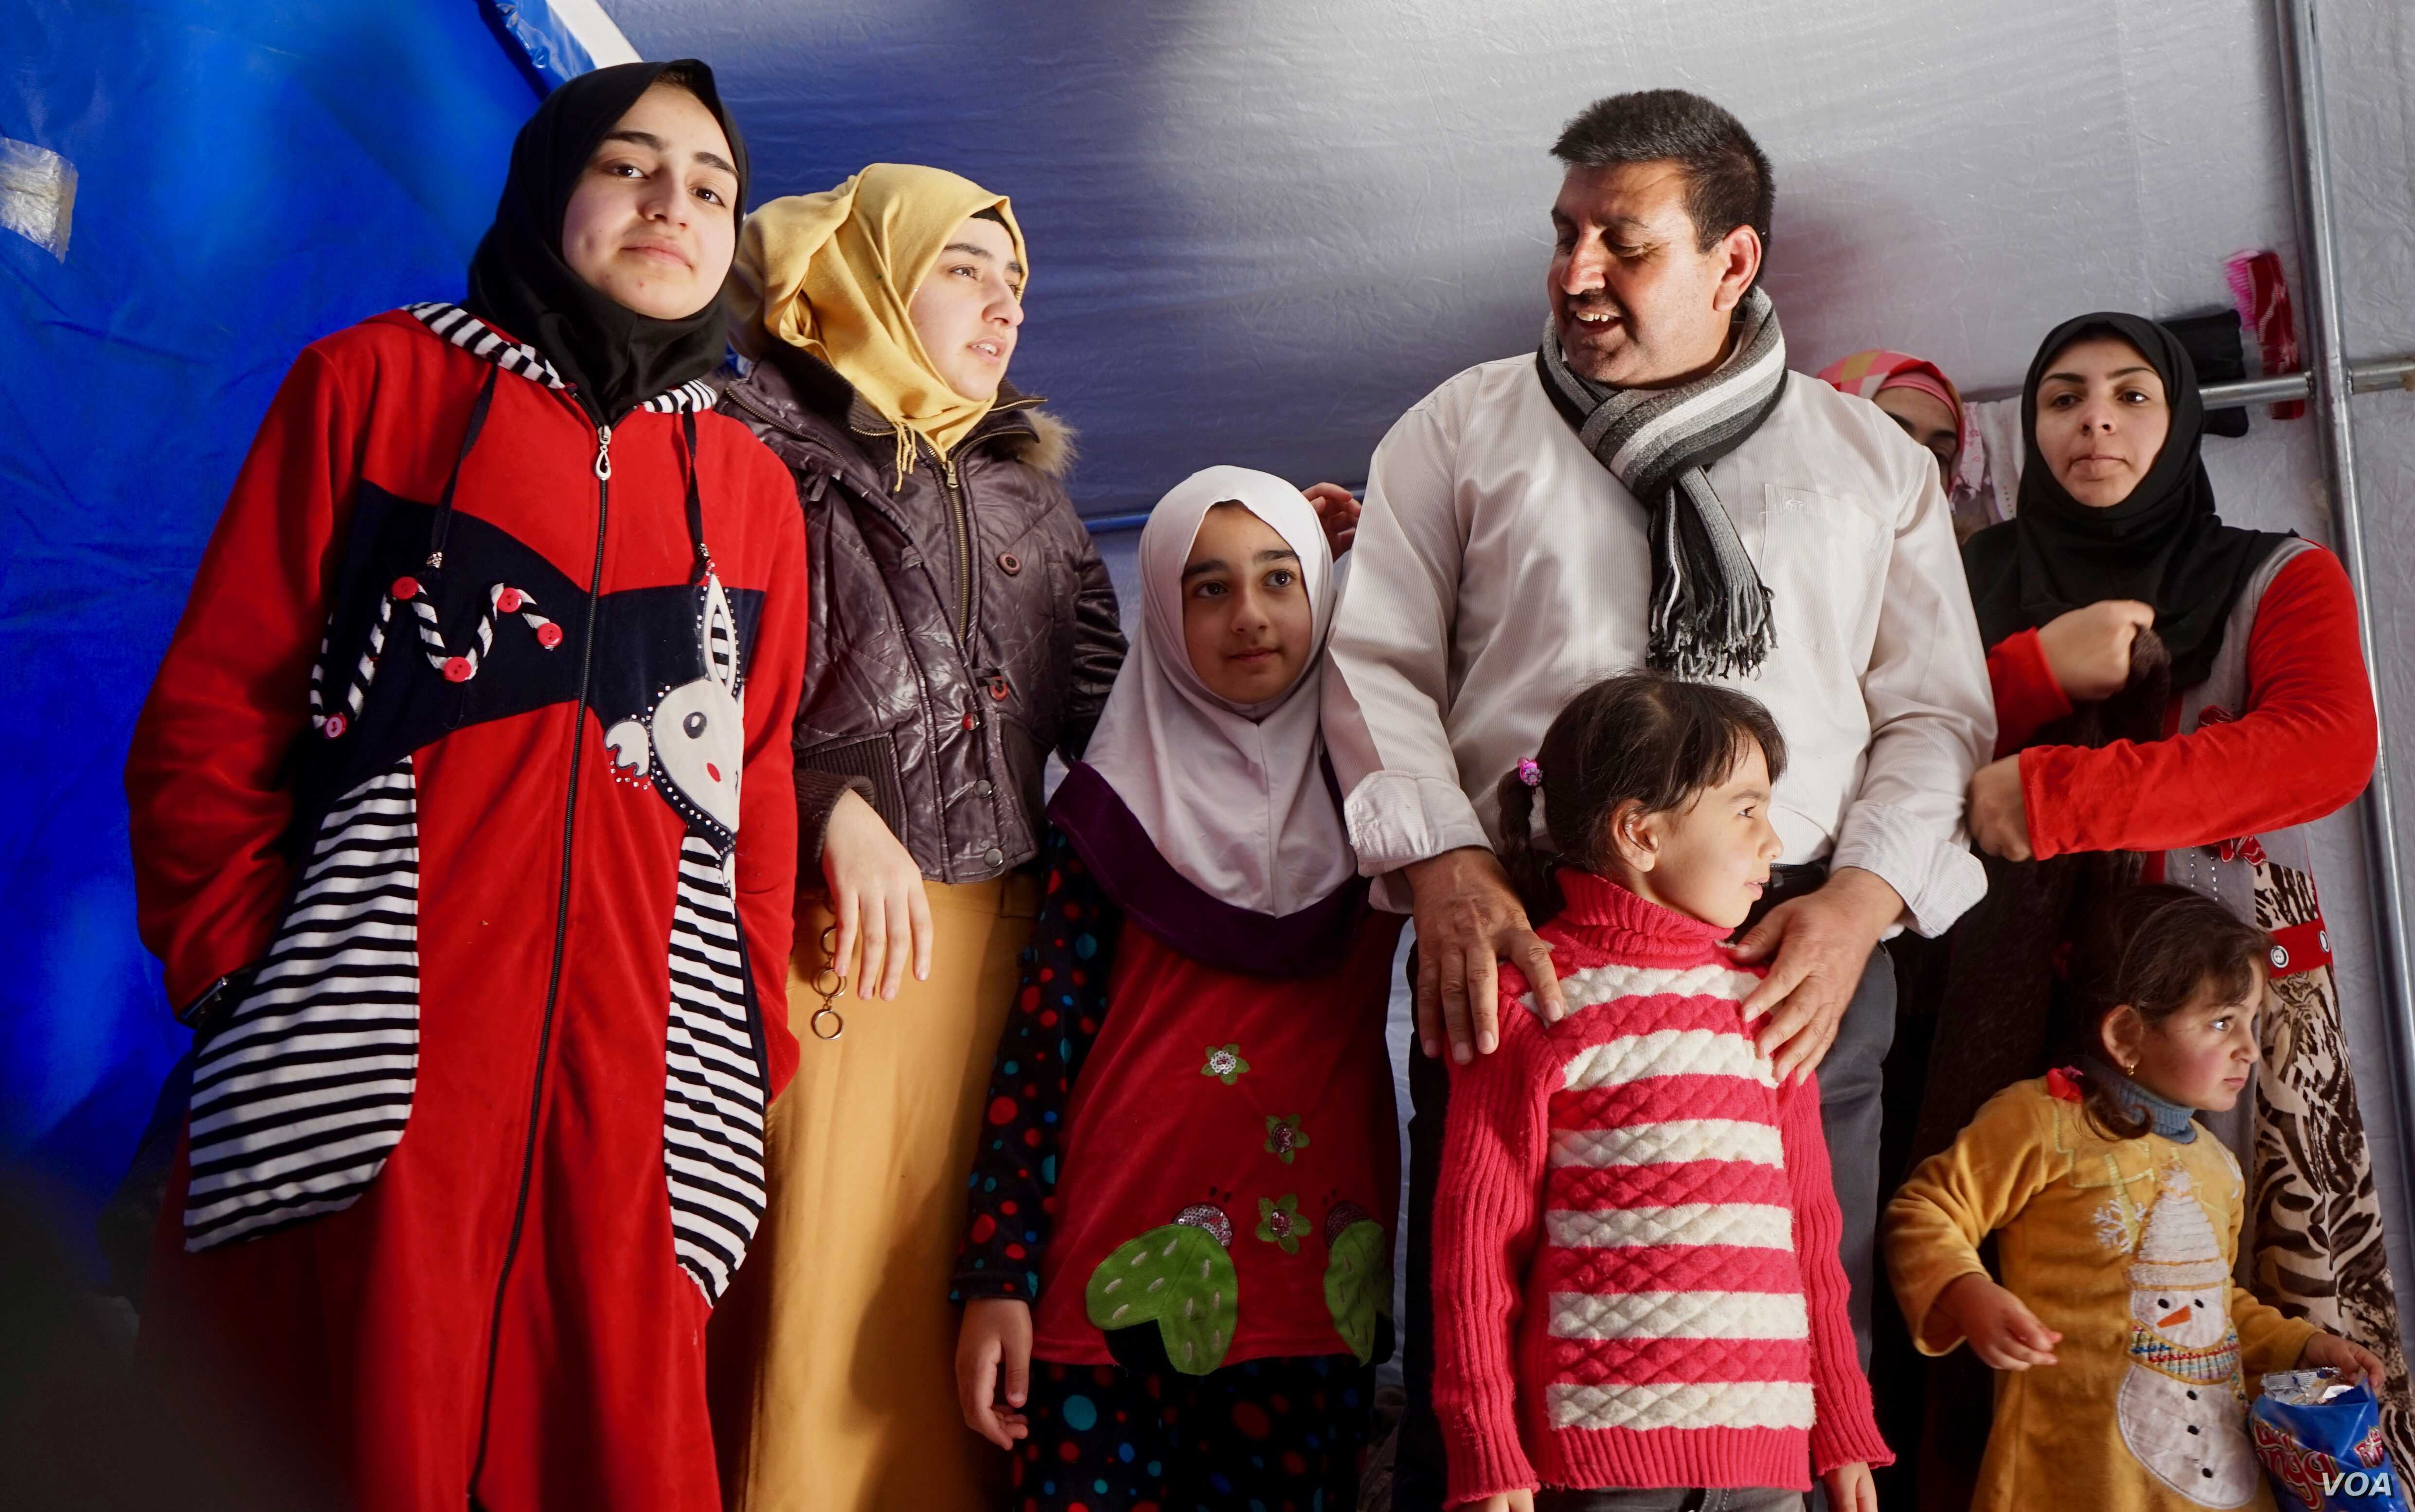 Mohammed and some of his daughters. He shivers when asked what life was like under ISIS in Mosul.